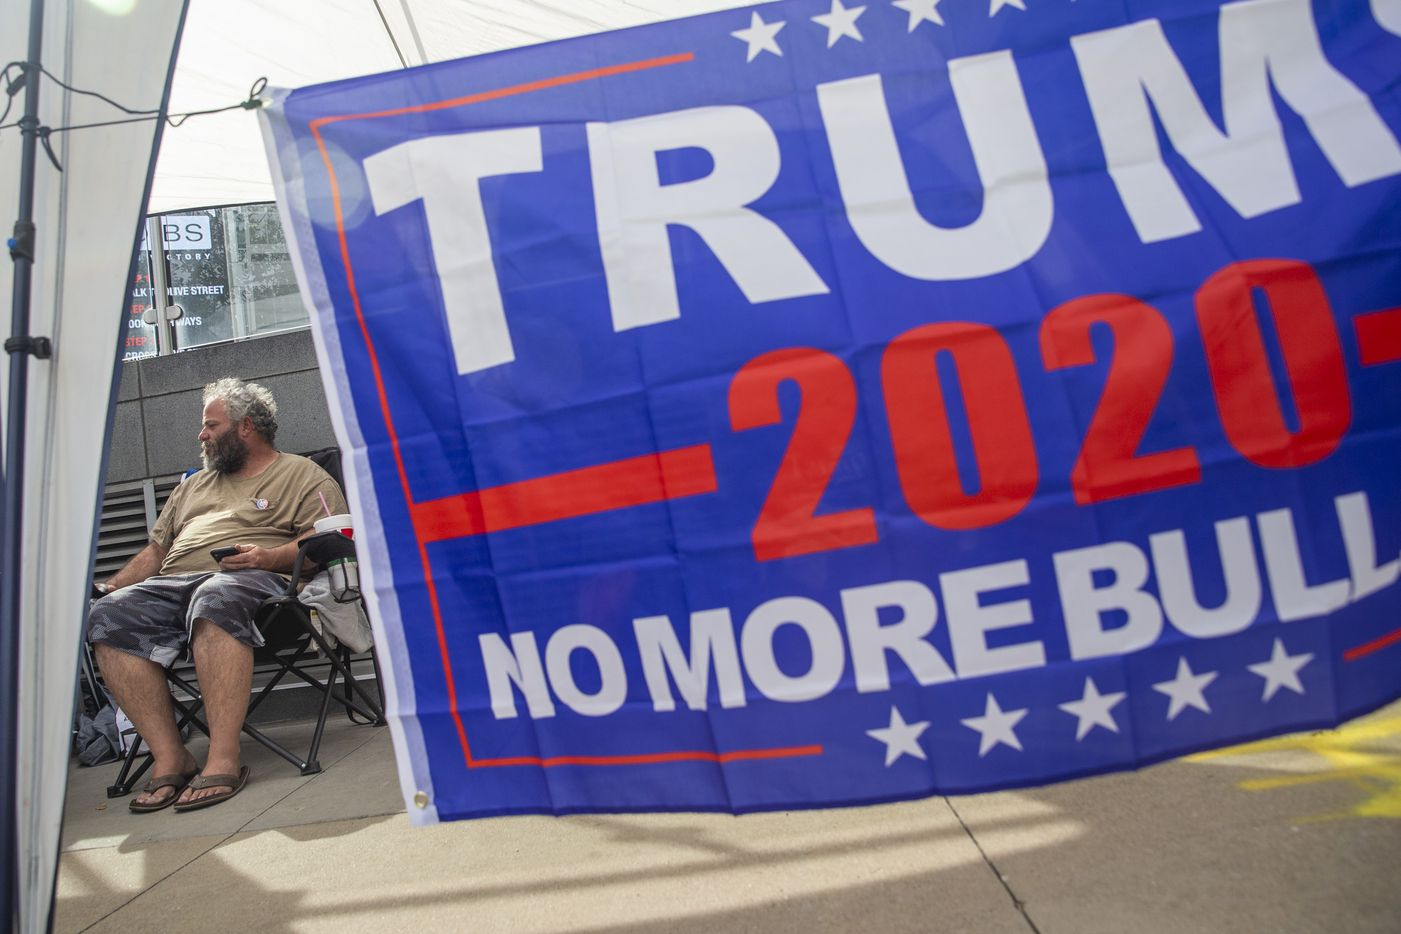 Glen Collins, from Waco, Texas, camps out in line in front of the American Airlines Center in Dallas on Wednesday, Oct. 16, 2019. President Donald Trump will host a rally at the center on Thursday evening.